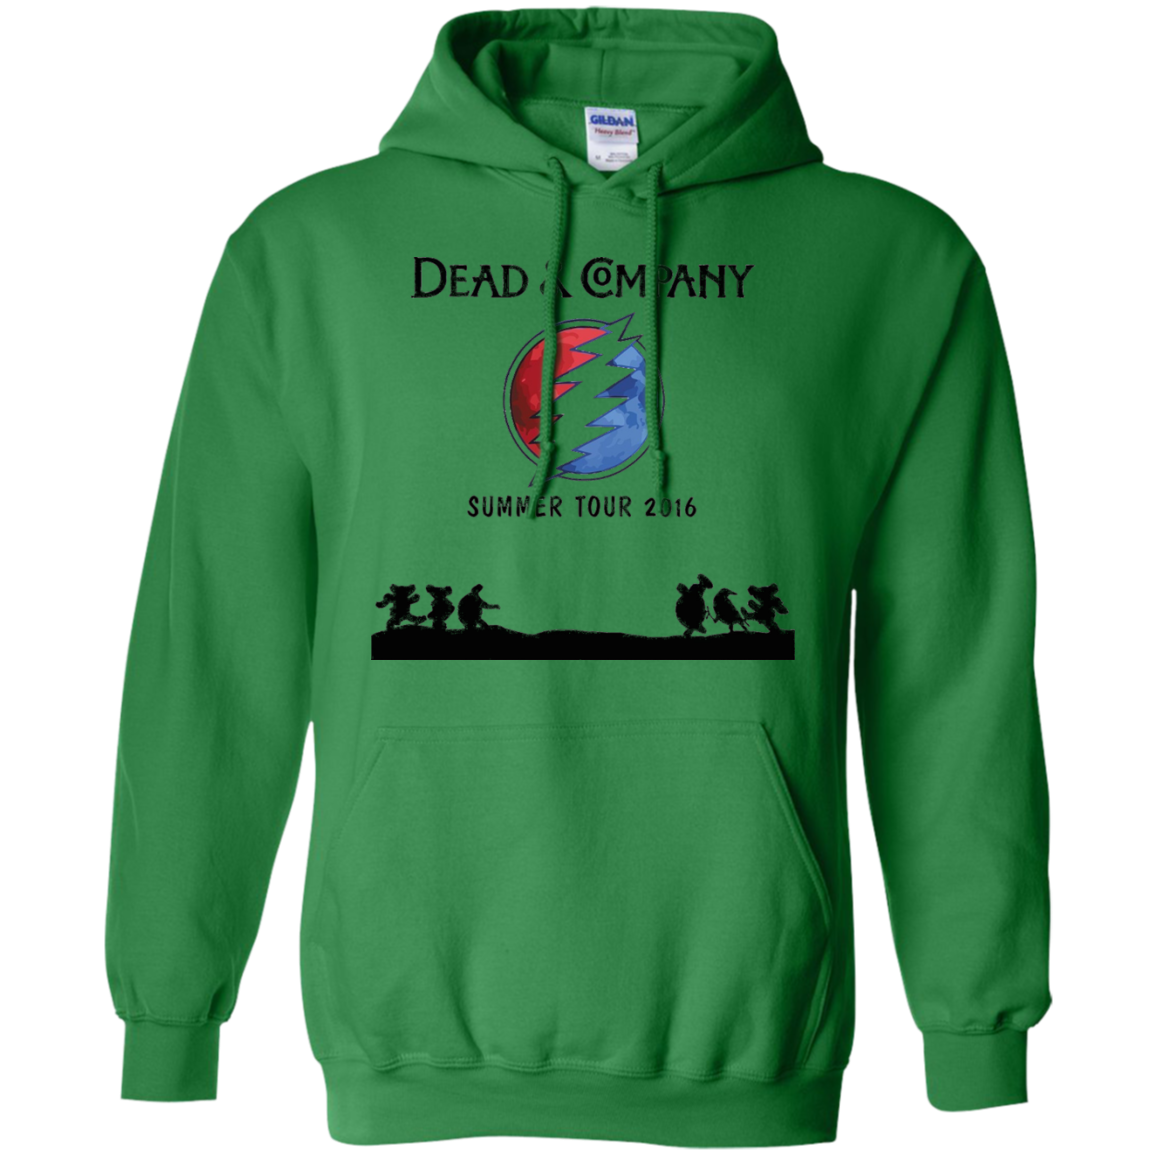 DEAD & COMPANY SUMMER TOUR 2016 T Shirt